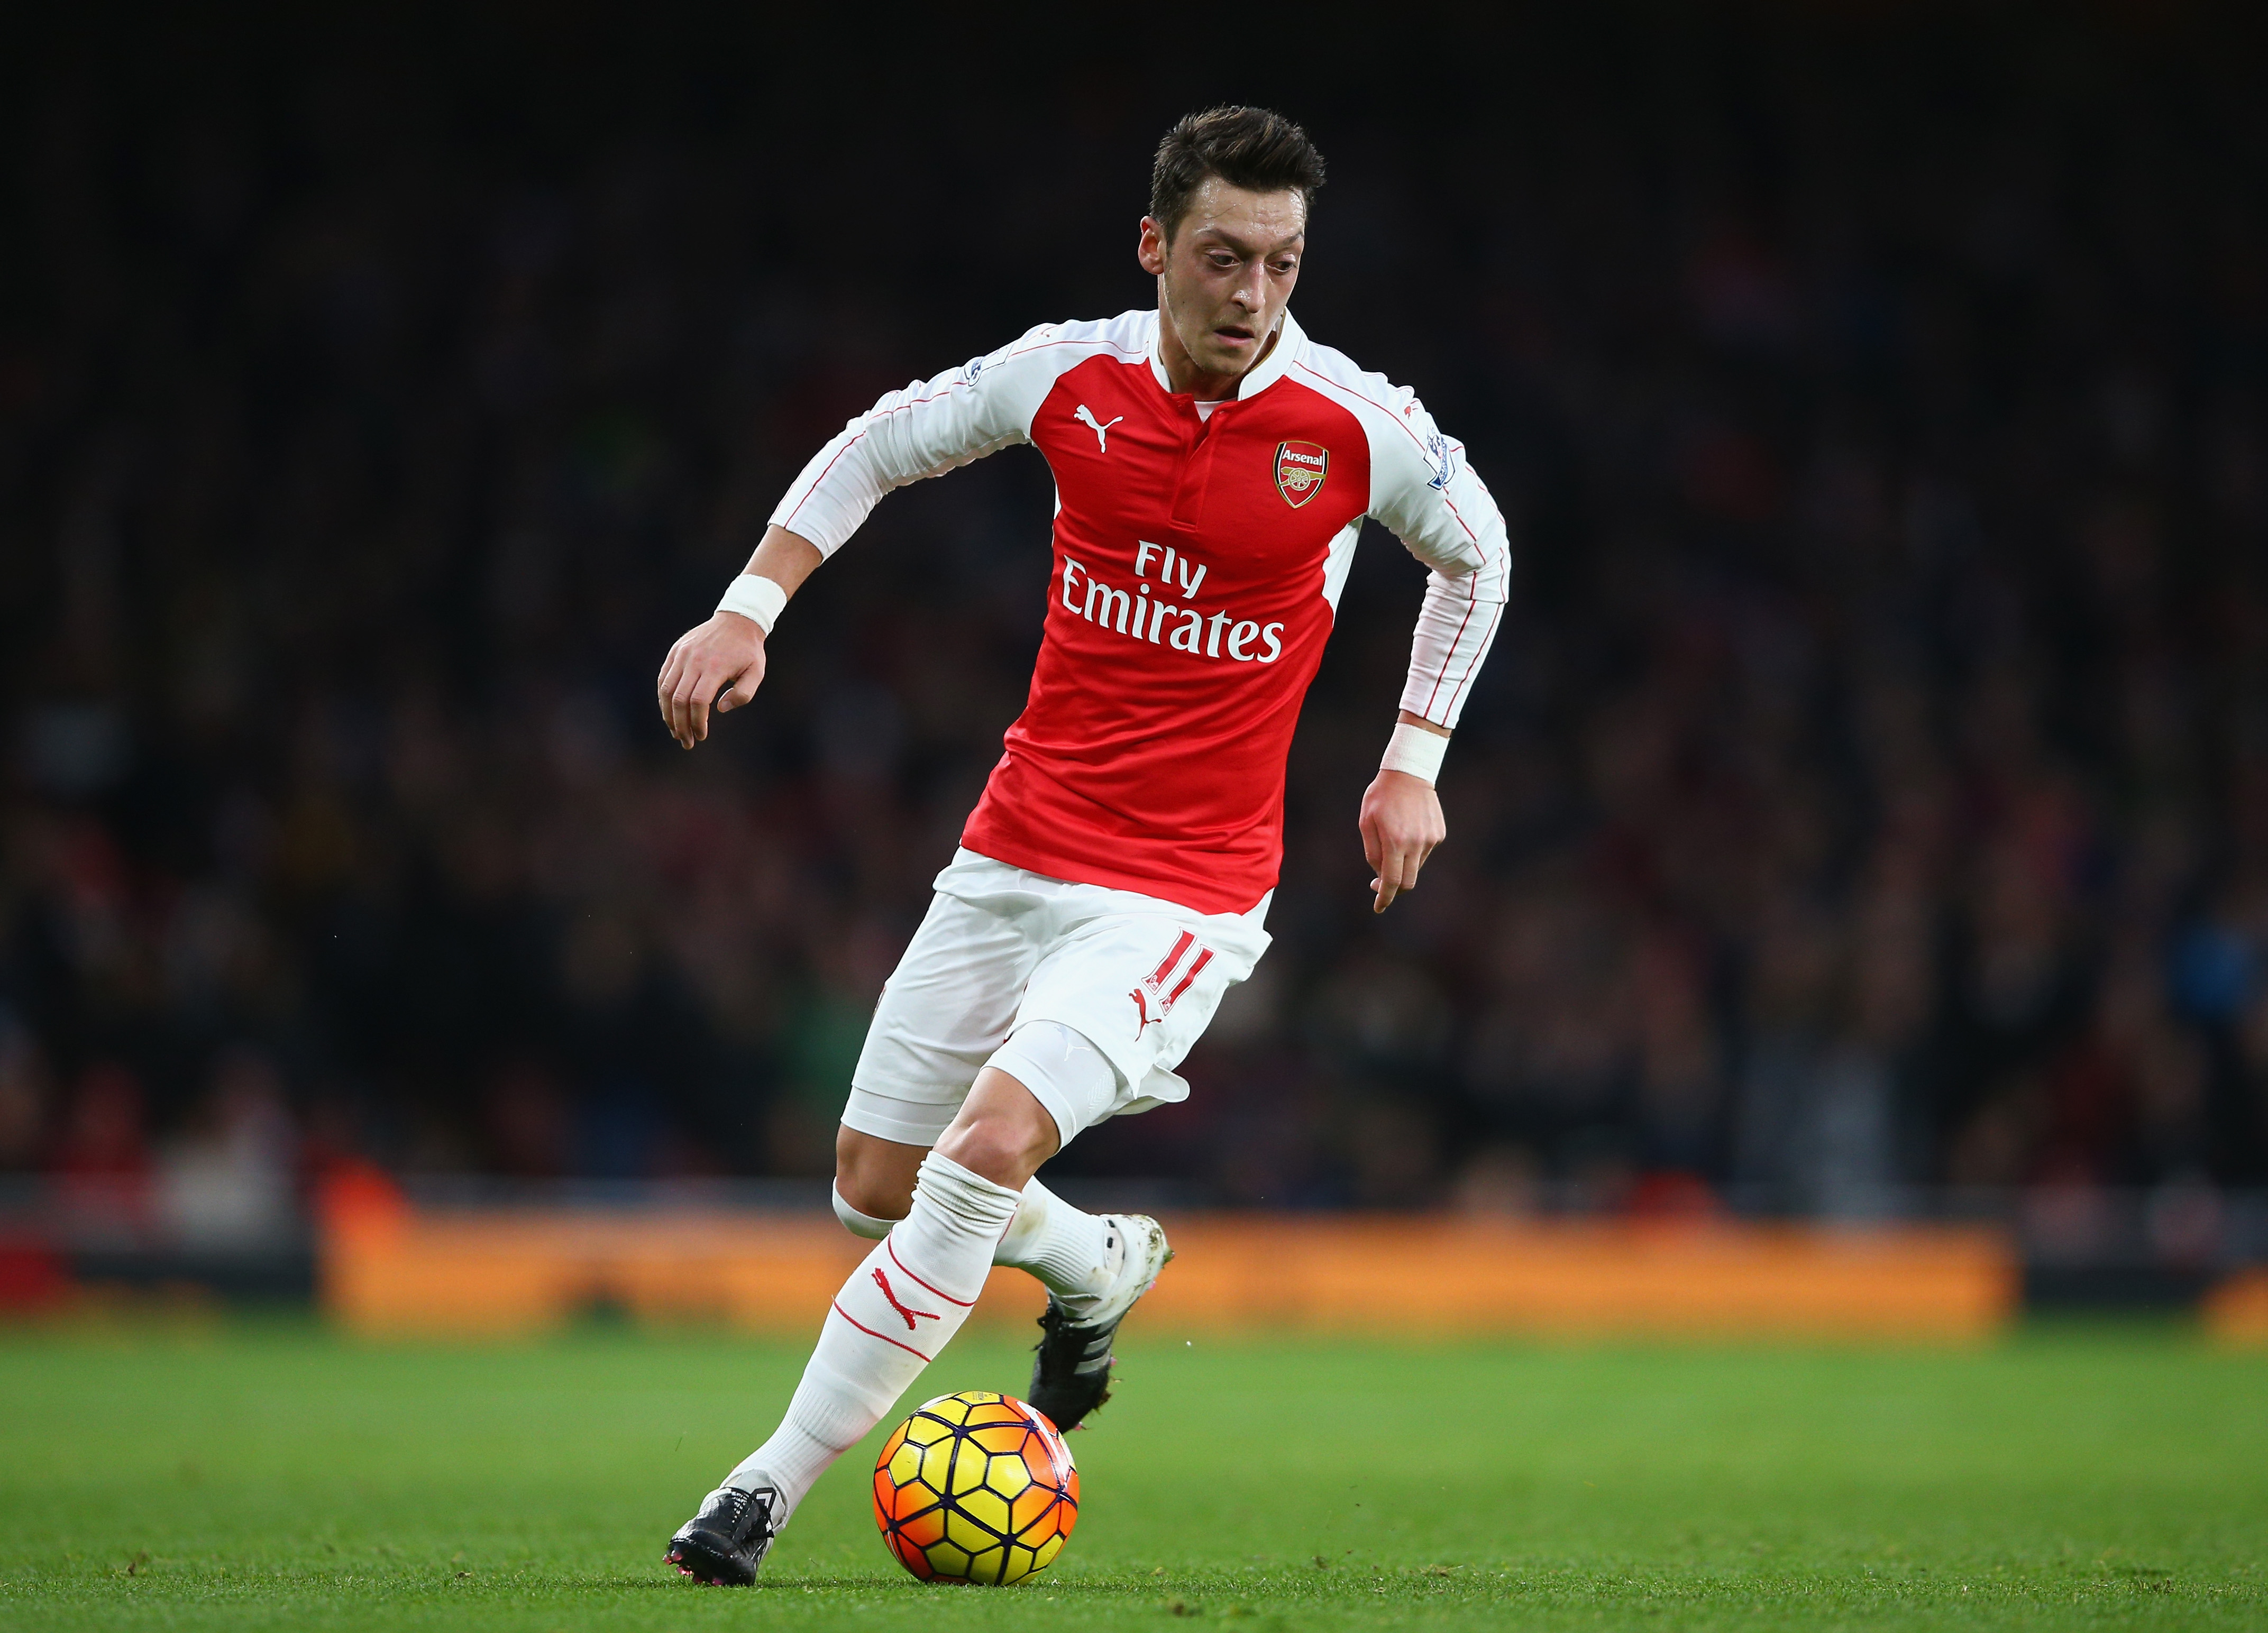 Arsenal vs. Aston Villa 2015 live stream: Time, TV schedule and how to watch EPL online